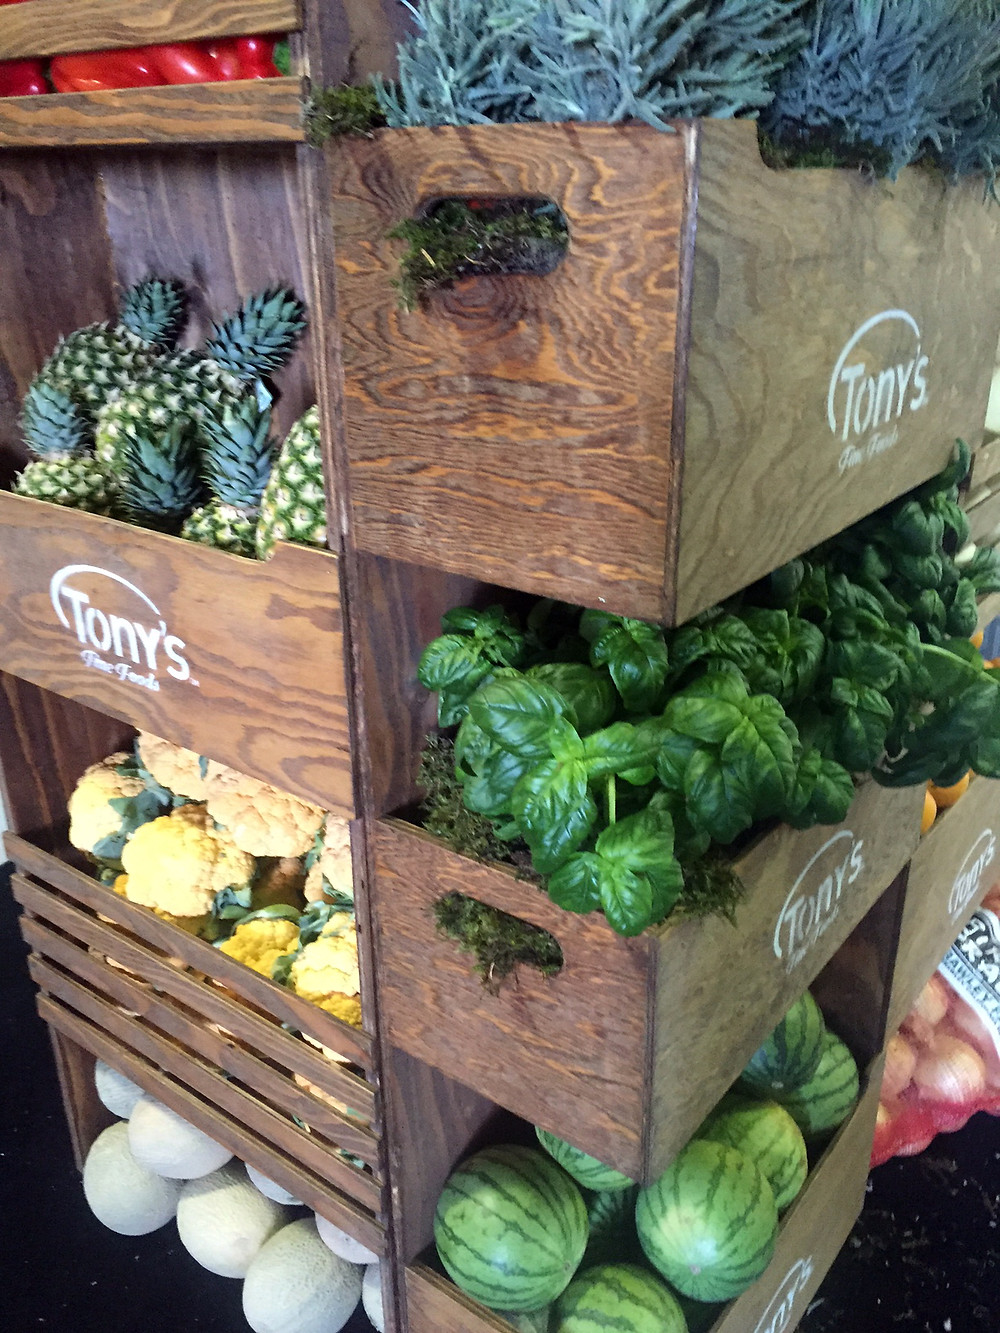 th!nk Fresh Food Show 2016 - detail of crates